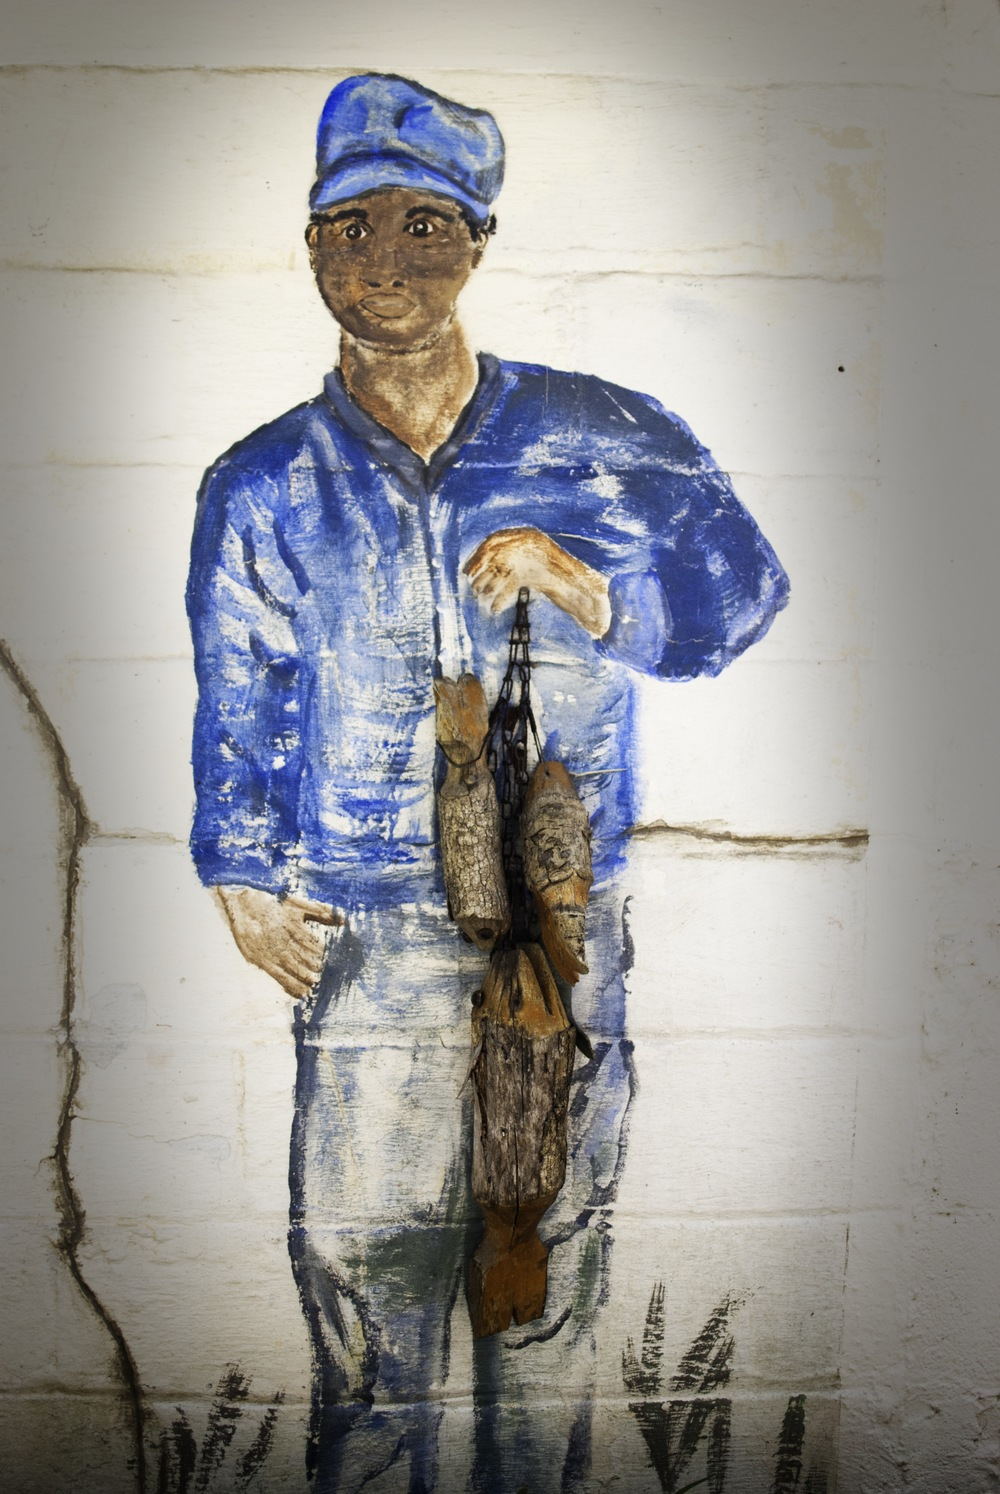 Painting of a Pin Point Fisherman on the cannery wall.